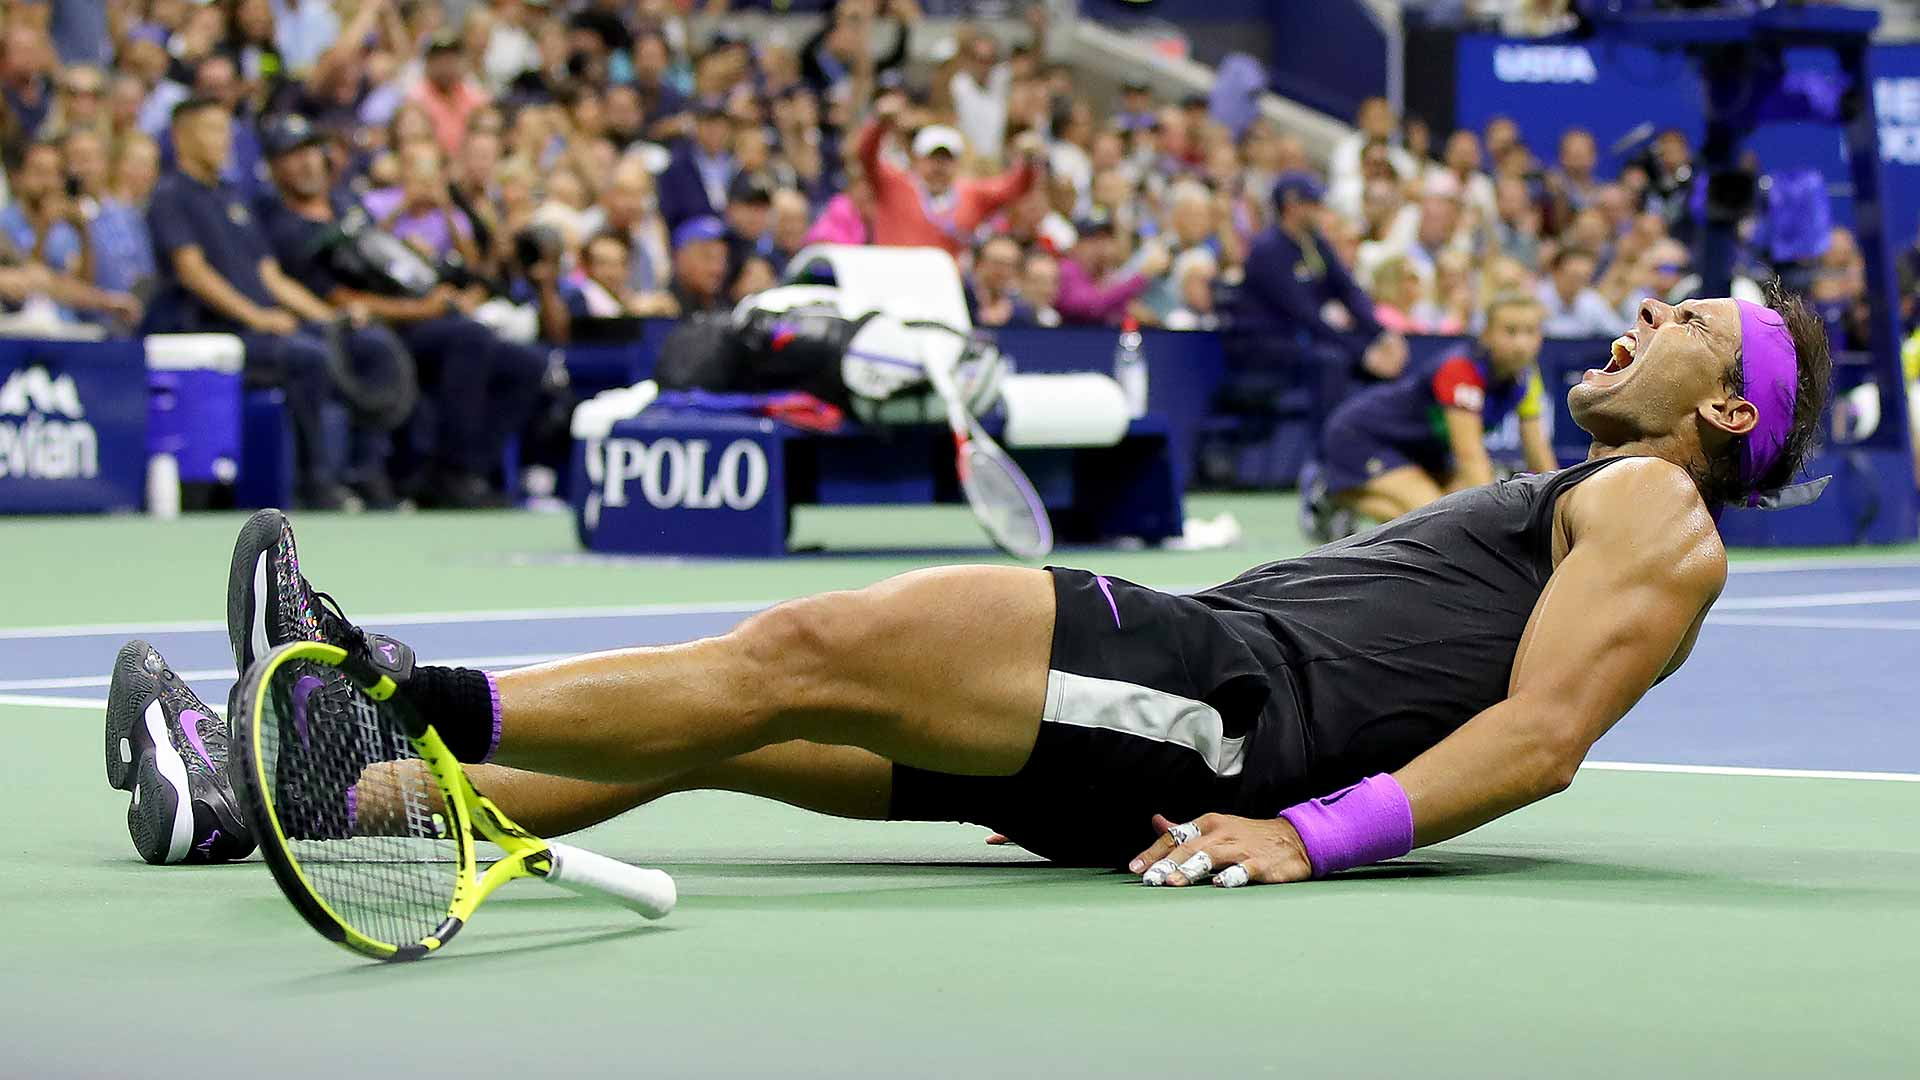 Rafael Nadal collapses after winning his fourth US Open title.